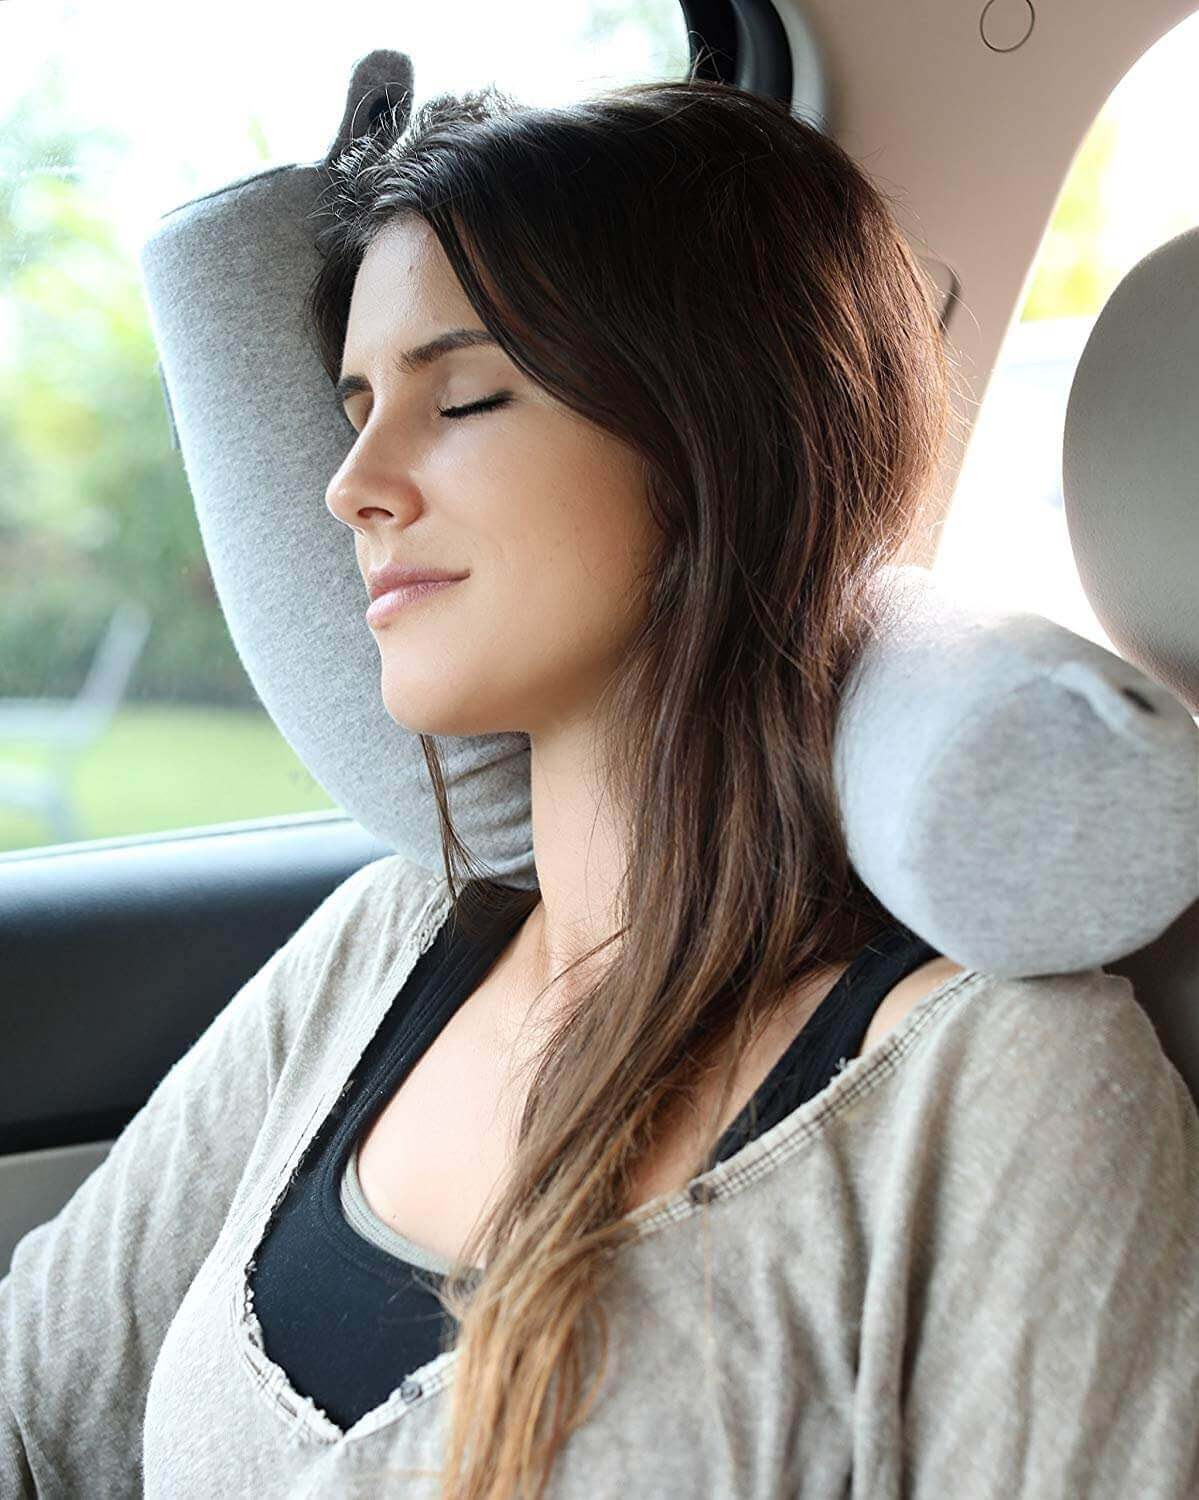 A woman sleeping in a car with an adjustable travel pillow.